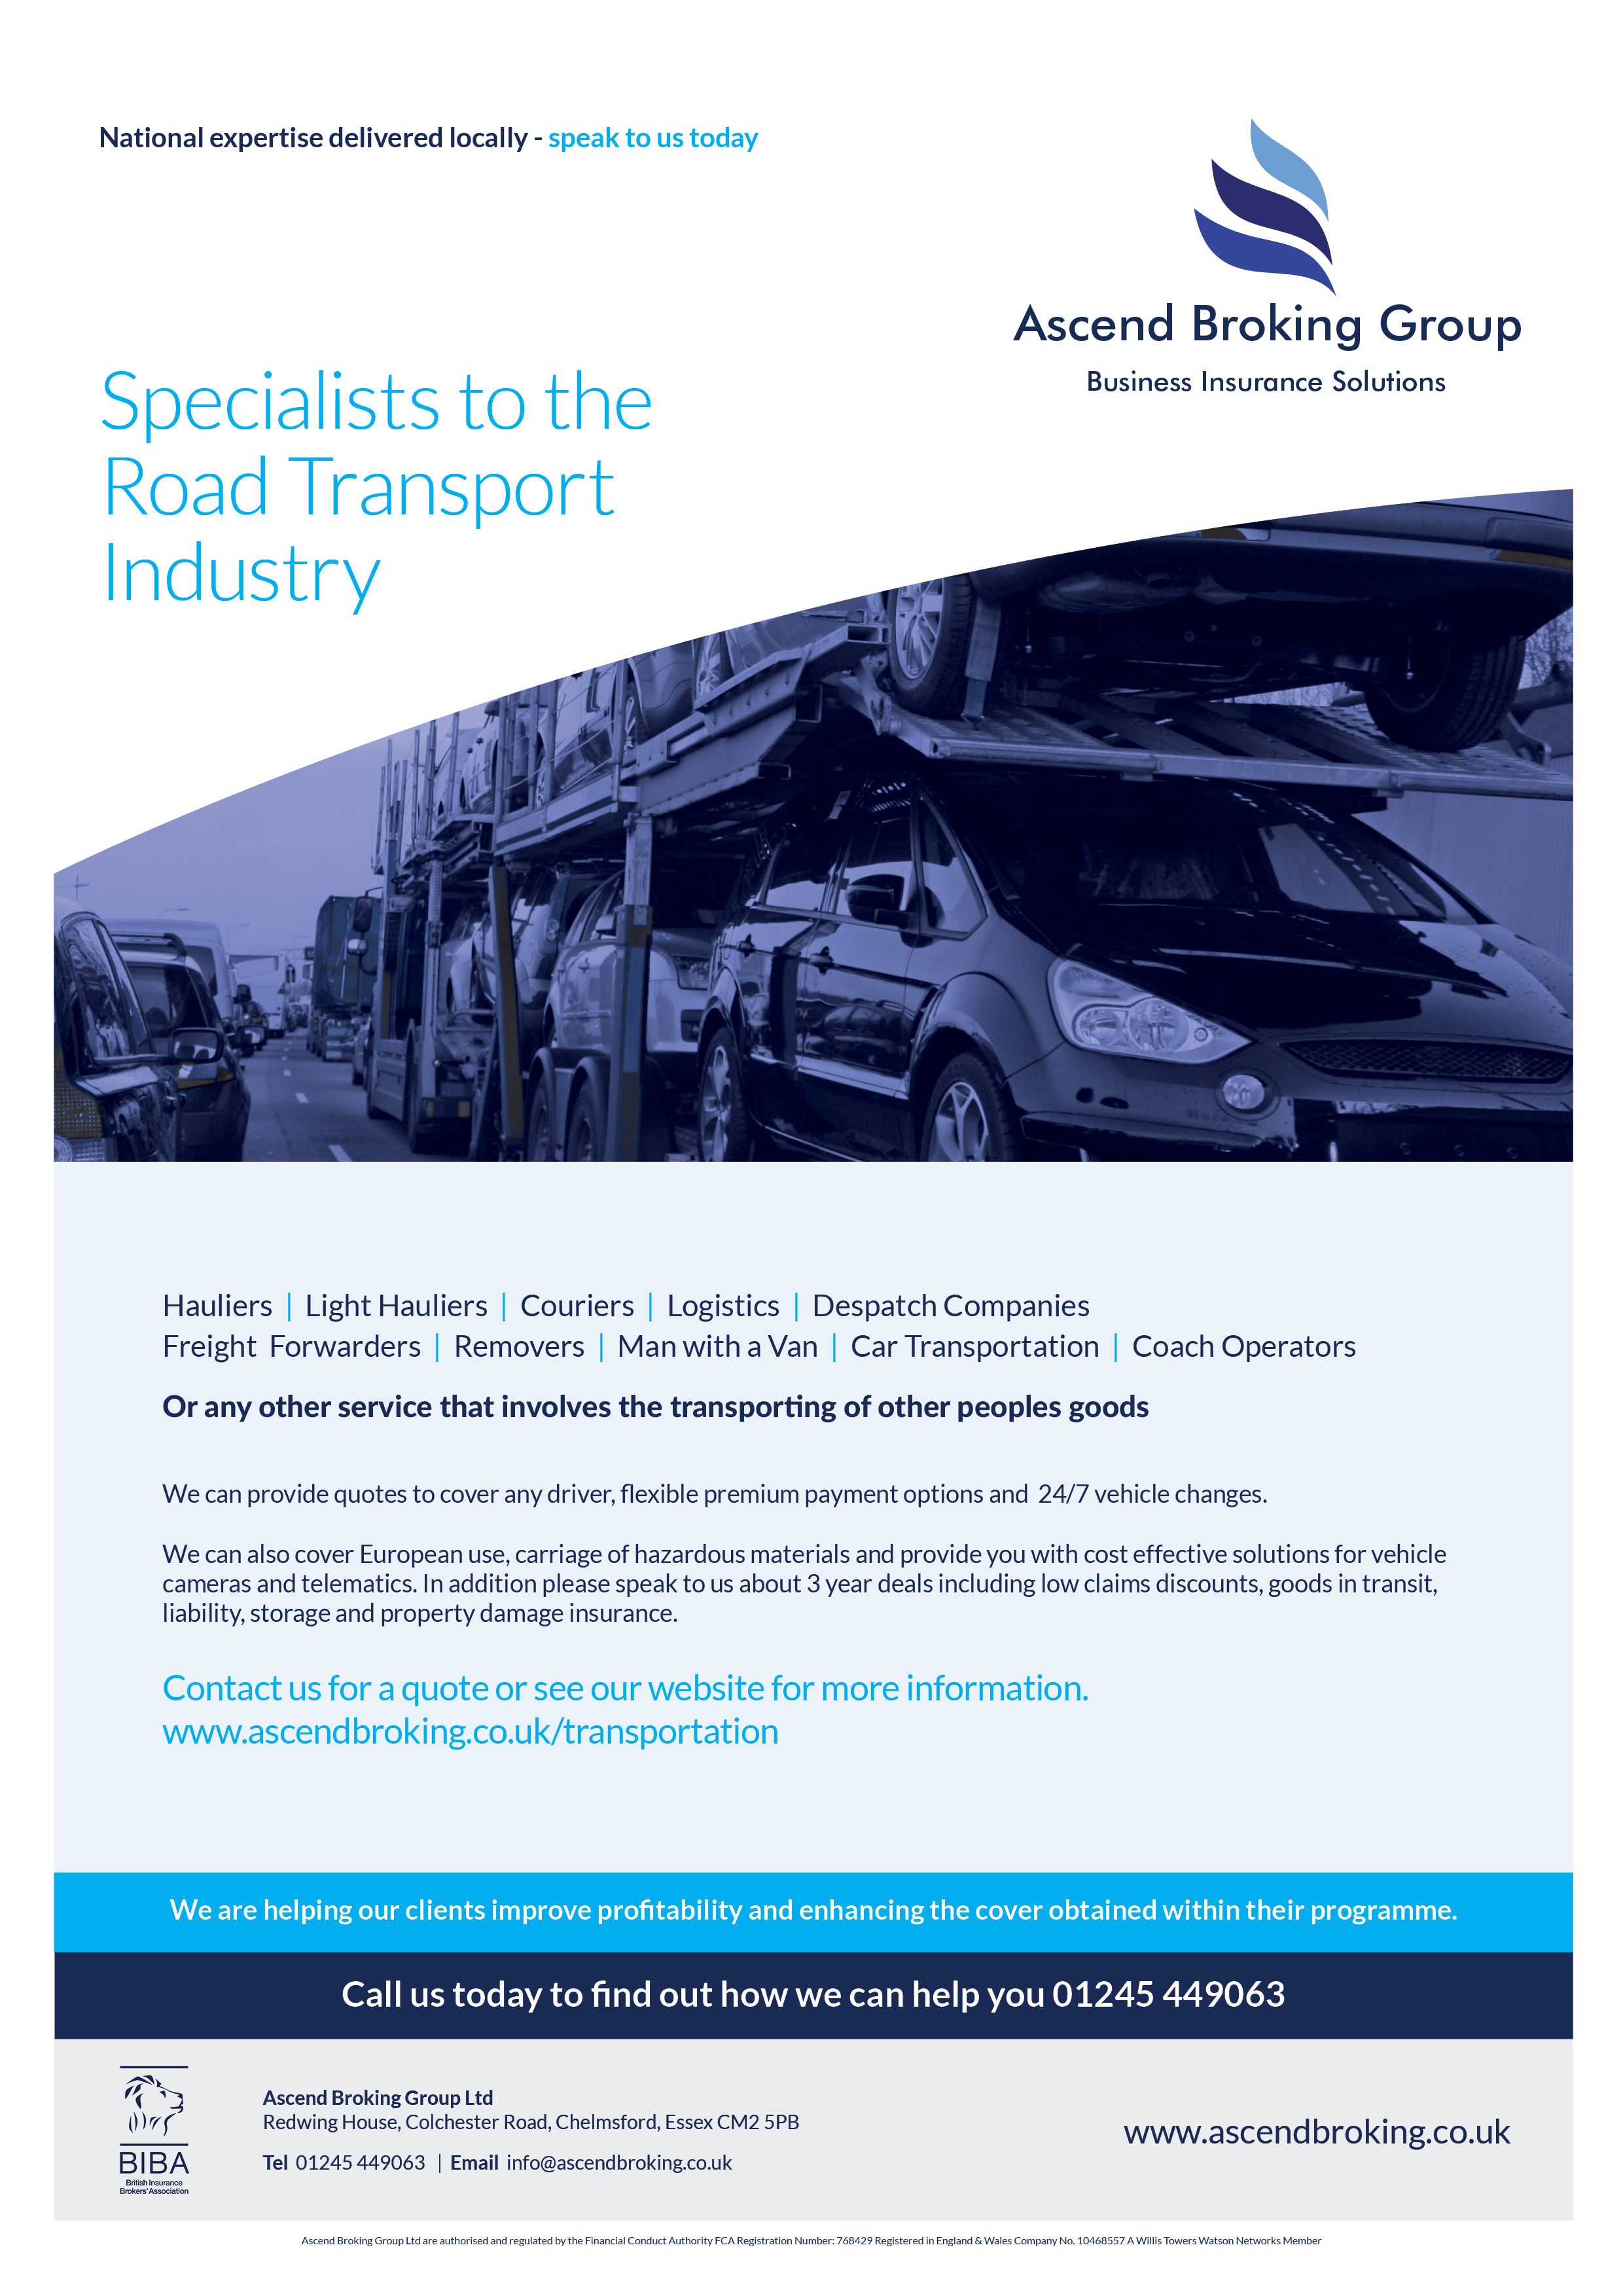 Specialists to the Road Transport Industry